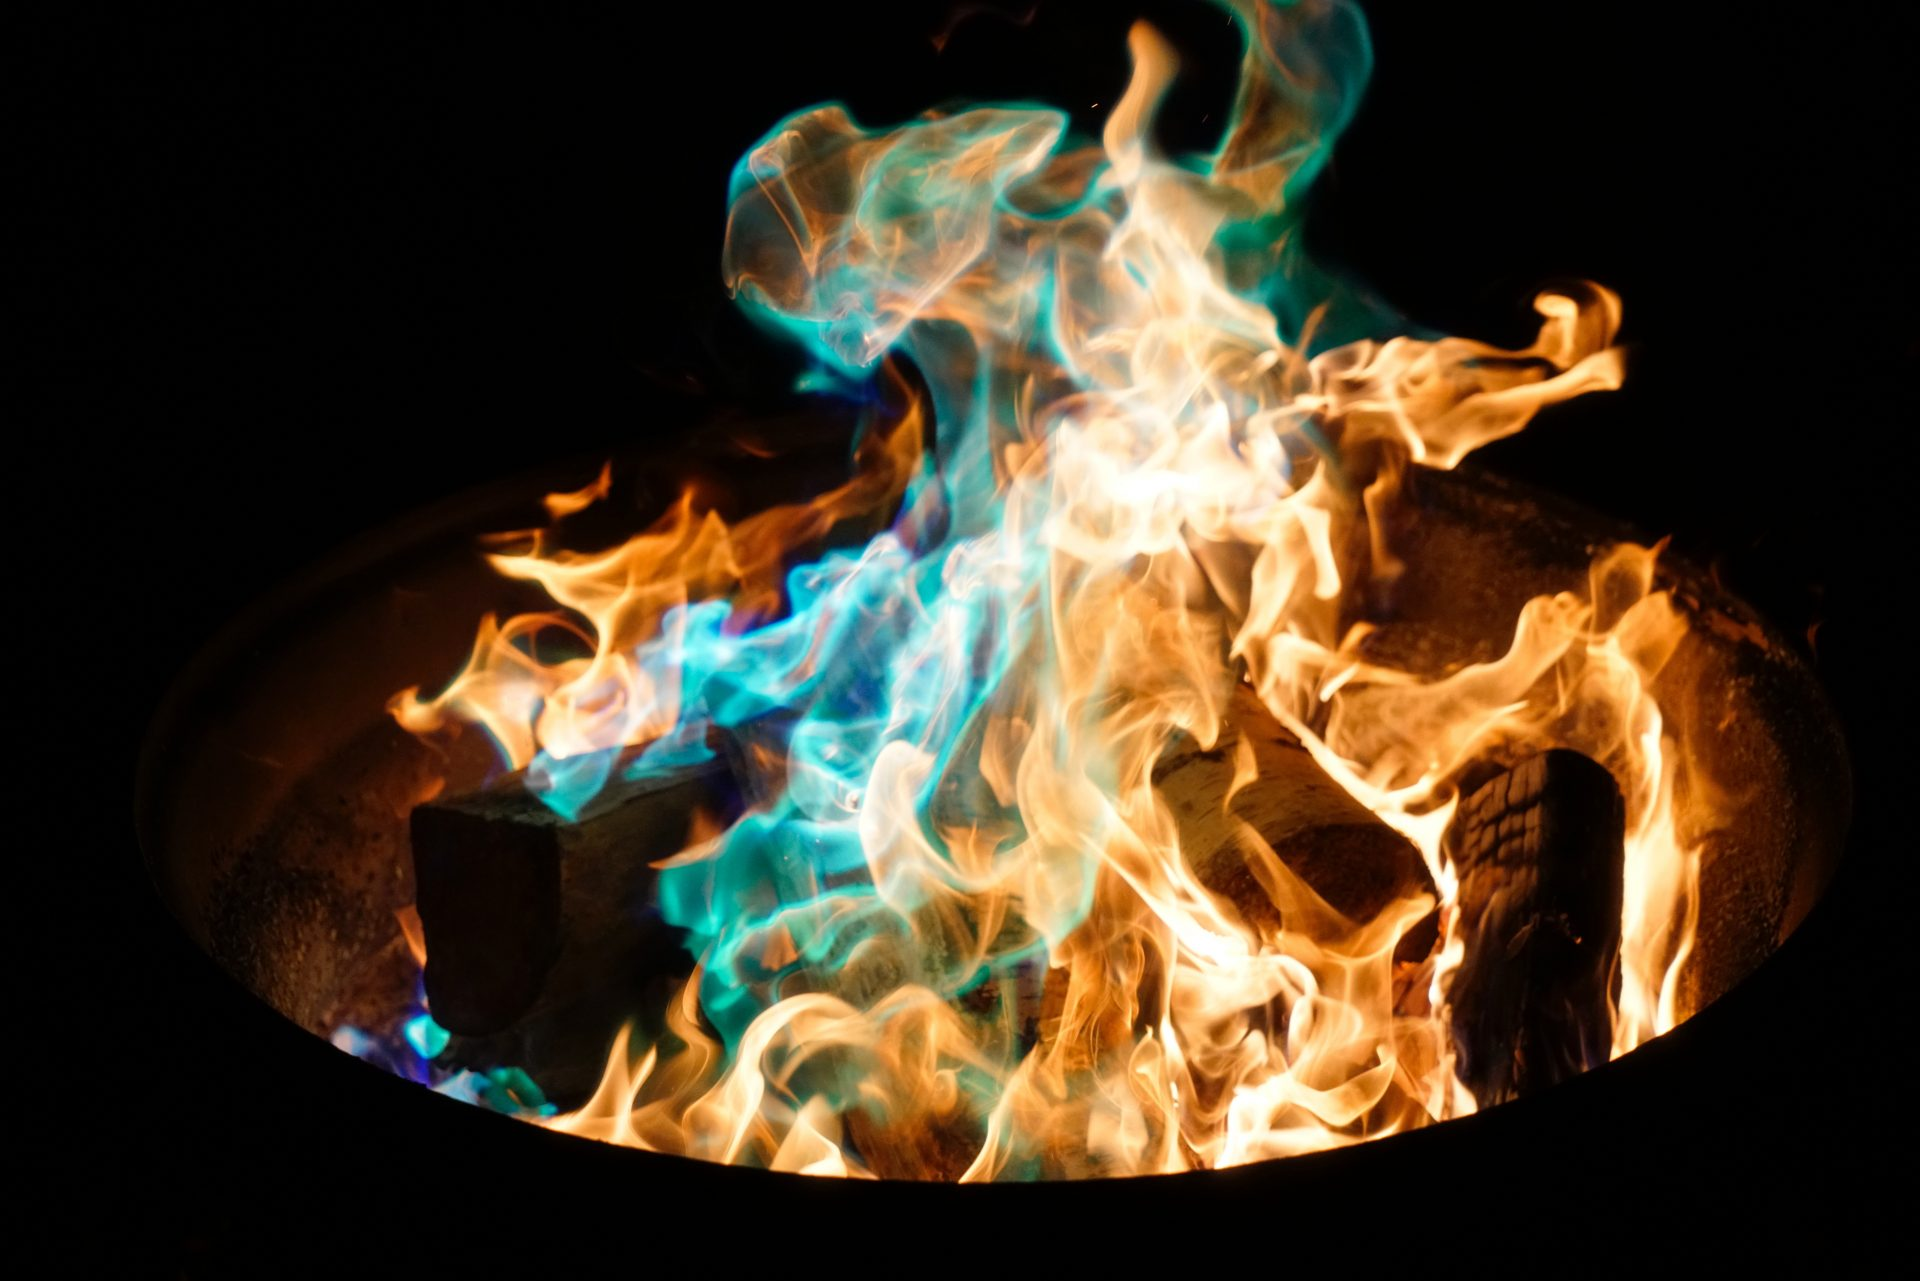 Blue and yellow flammes on a black background